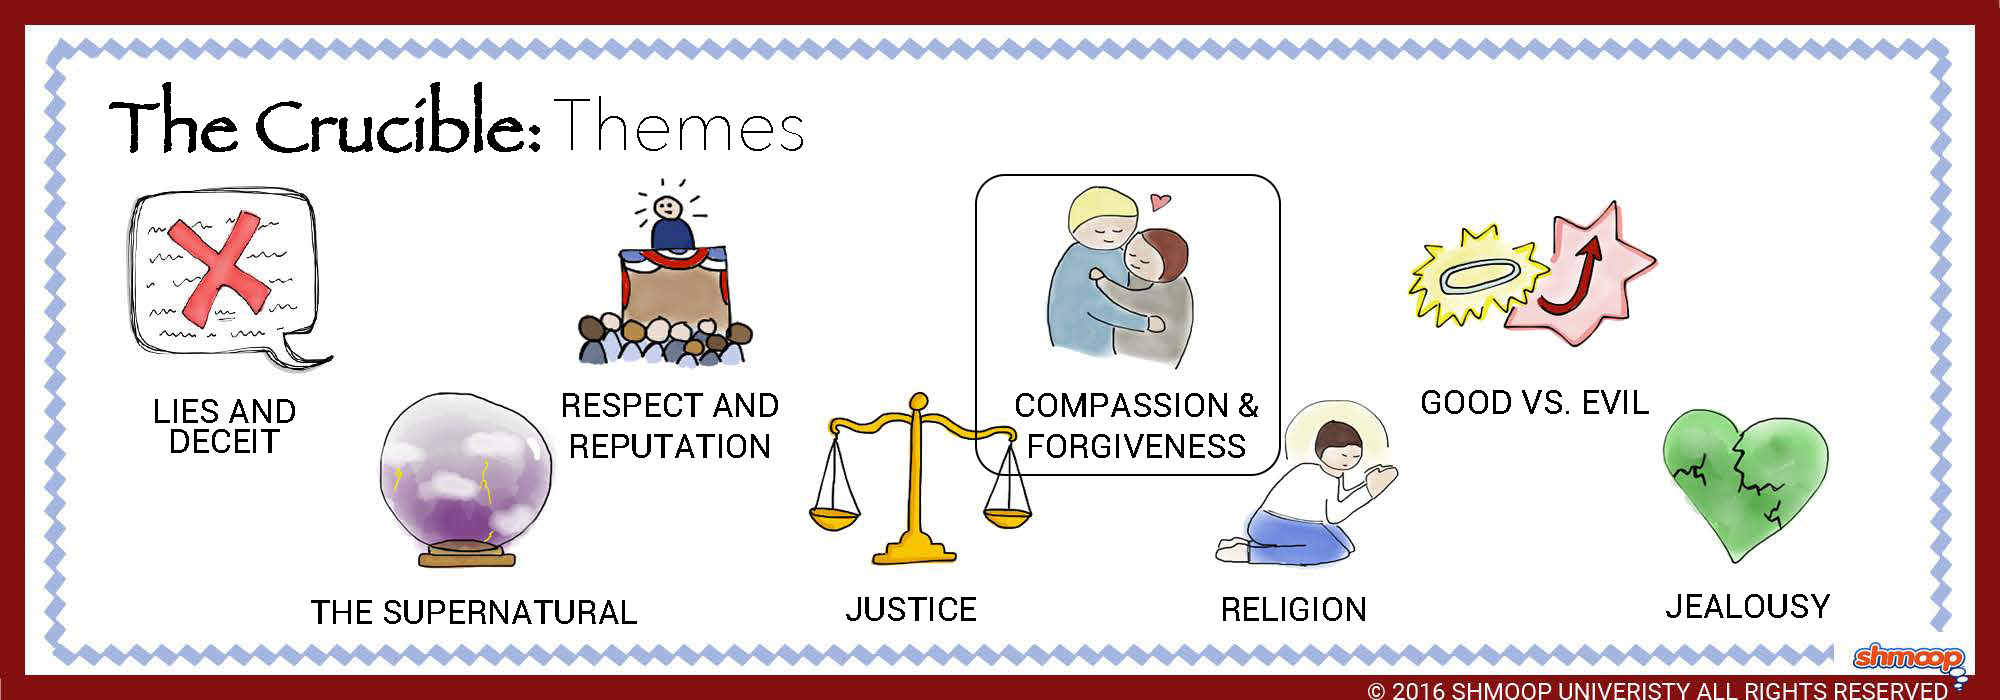 essay about forgiveness the crucible theme of compassion and forgiveness